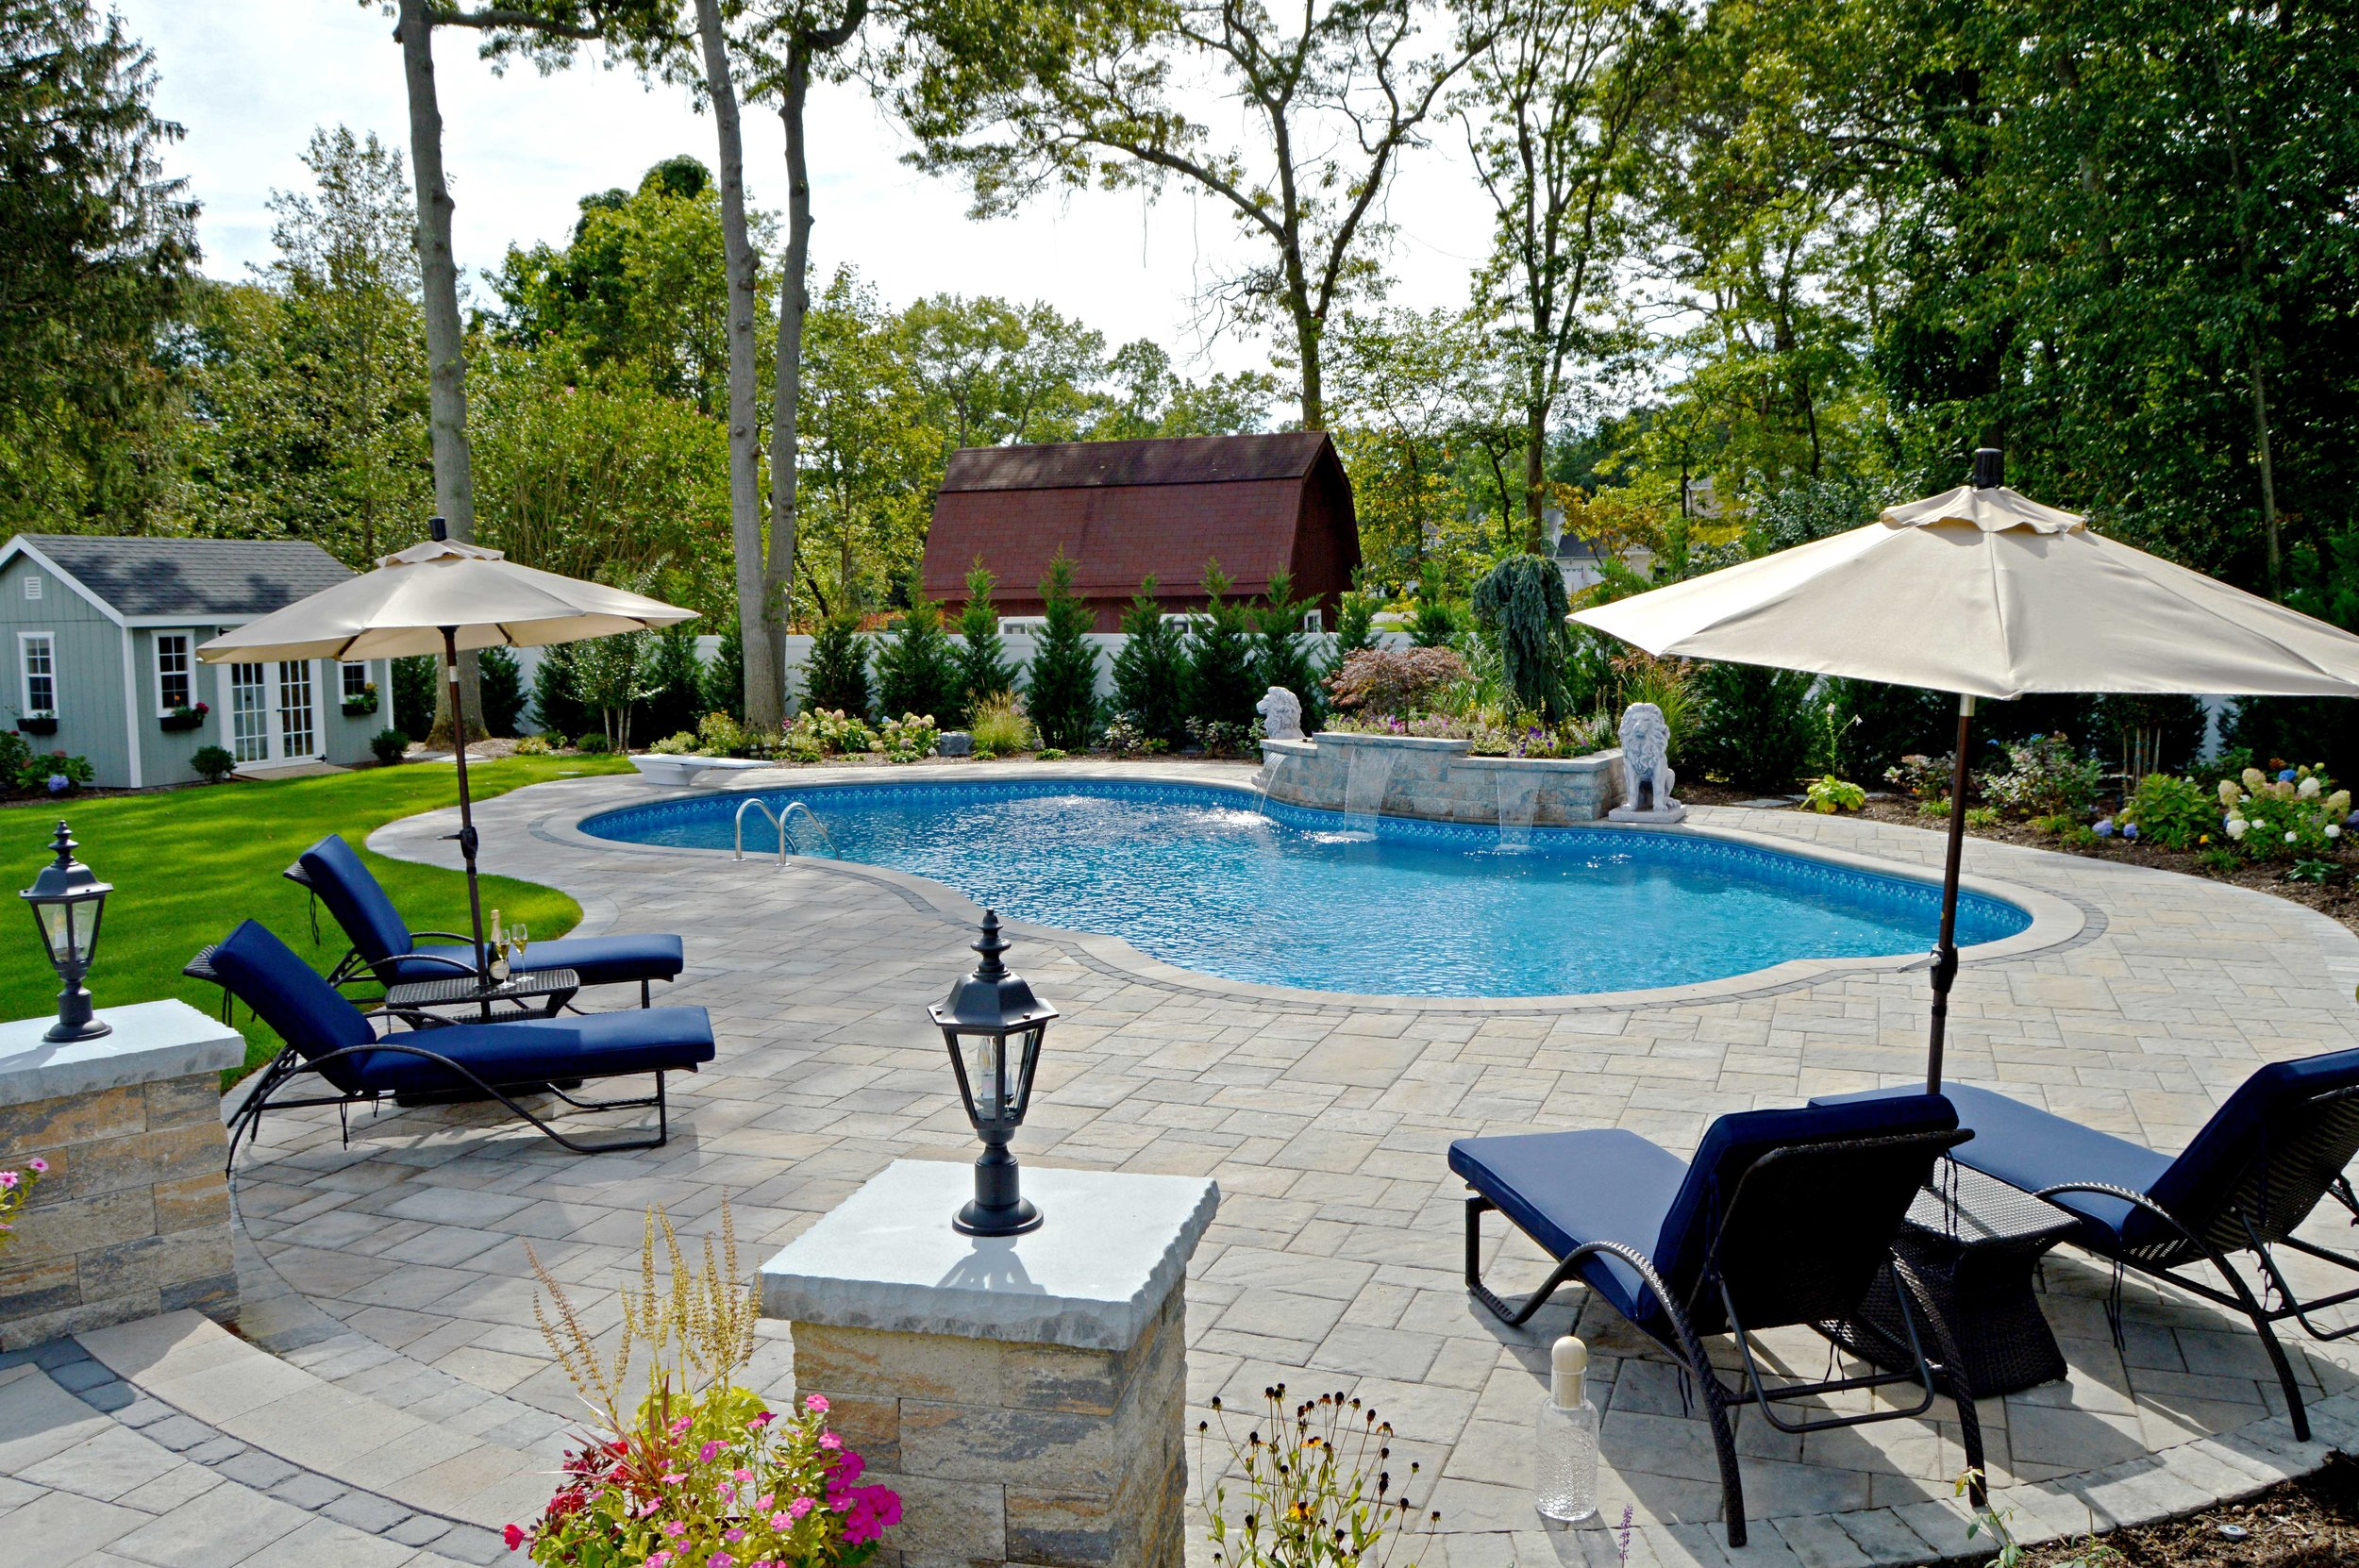 Lounging on a poolside patio in Smithtown, NY